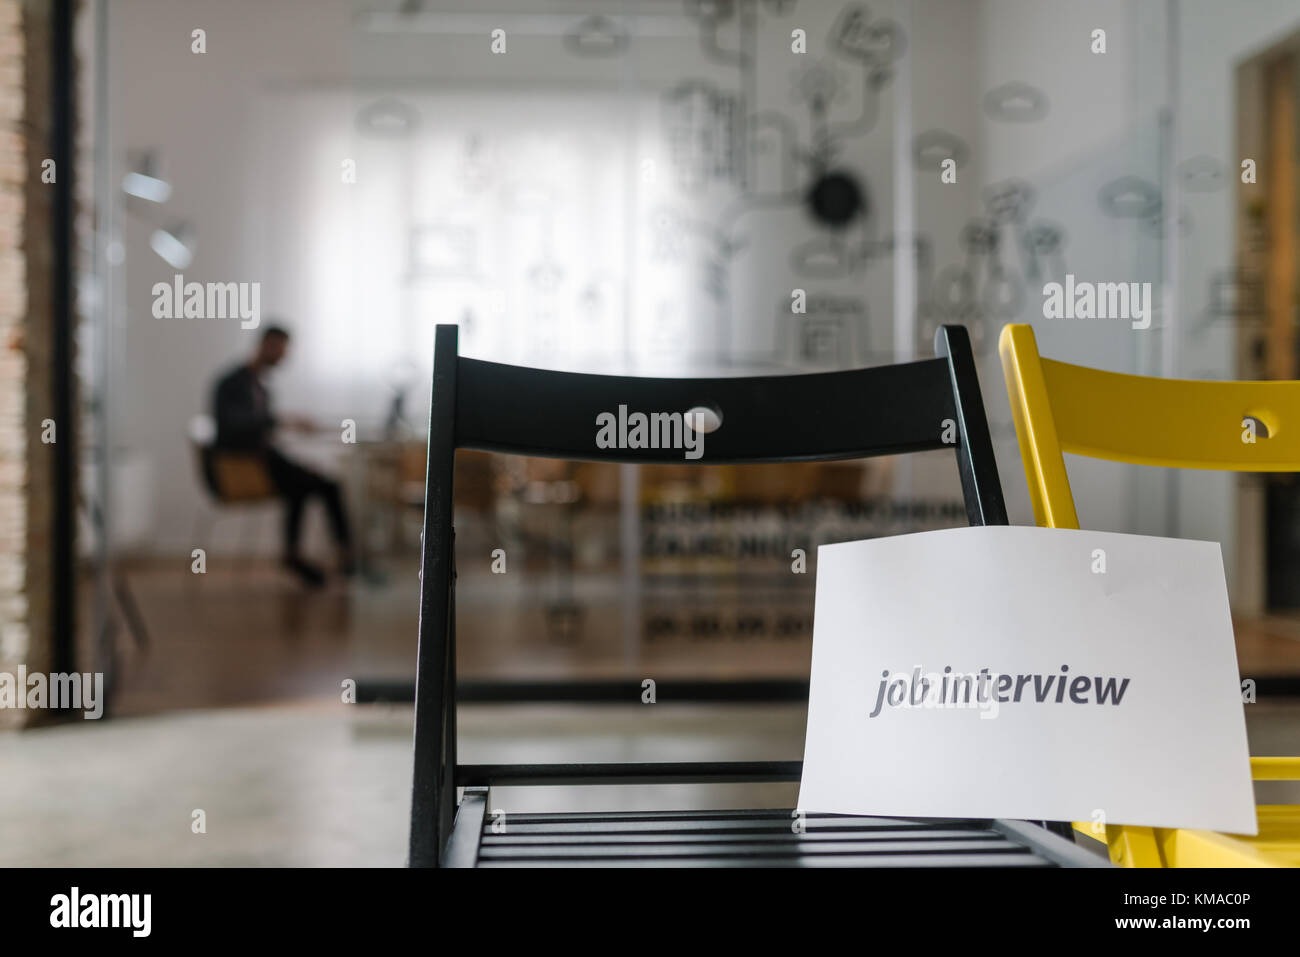 New job openings for a new start-up company - Stock Image